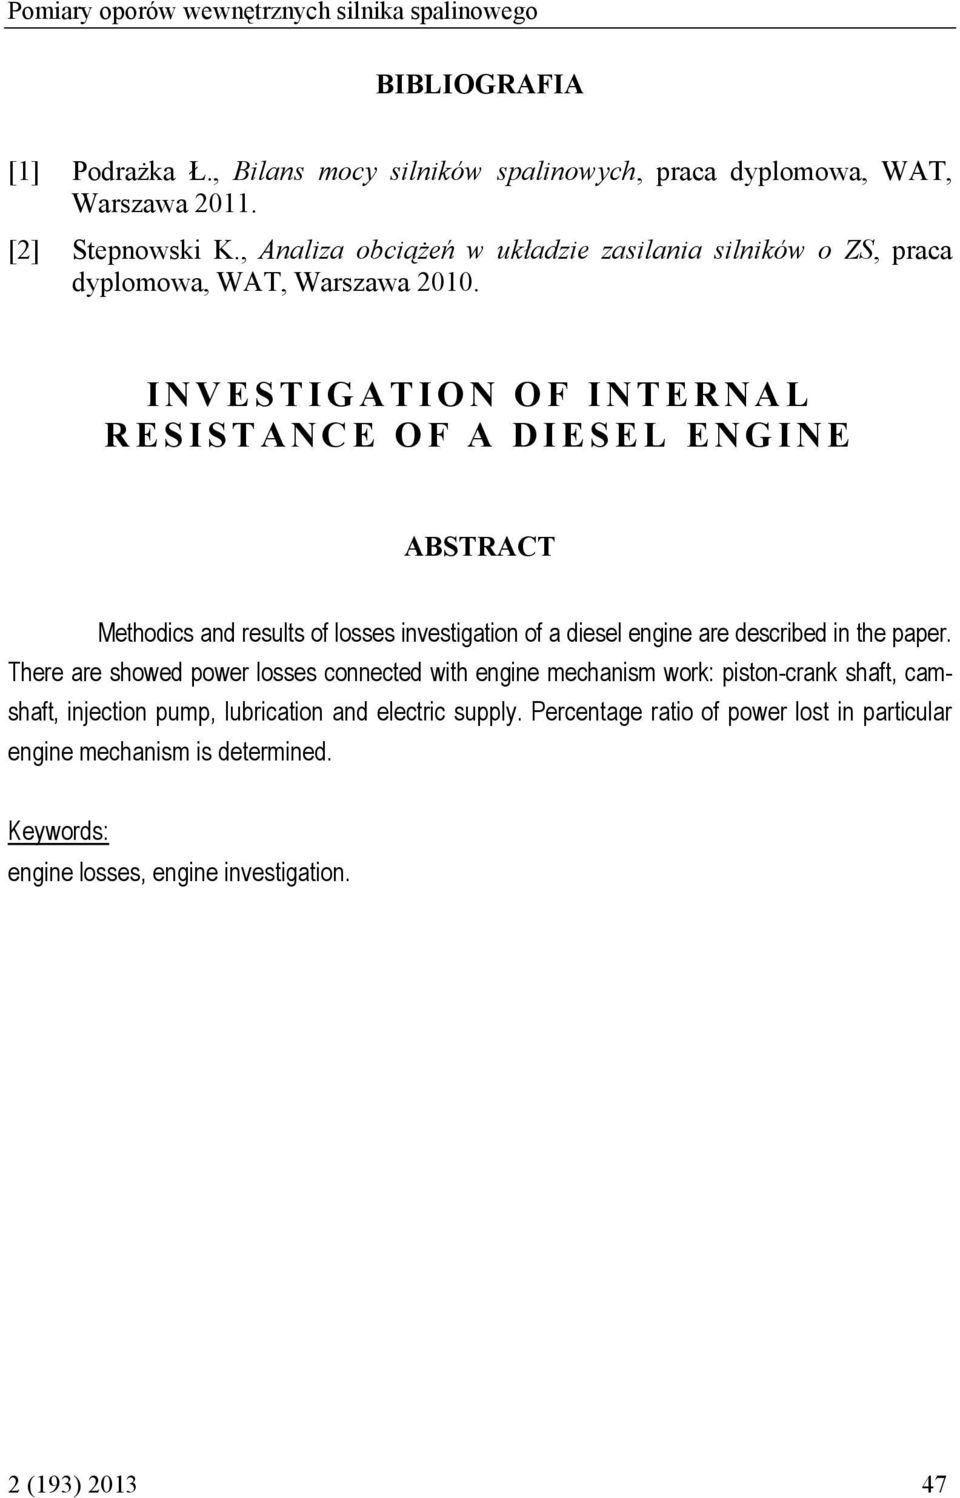 INVESTIGATION OF INTERNAL RESISTANCE OF A DIESEL ENGINE ABSTRACT Methodics and results of losses investigation of a diesel engine are described in the paper.